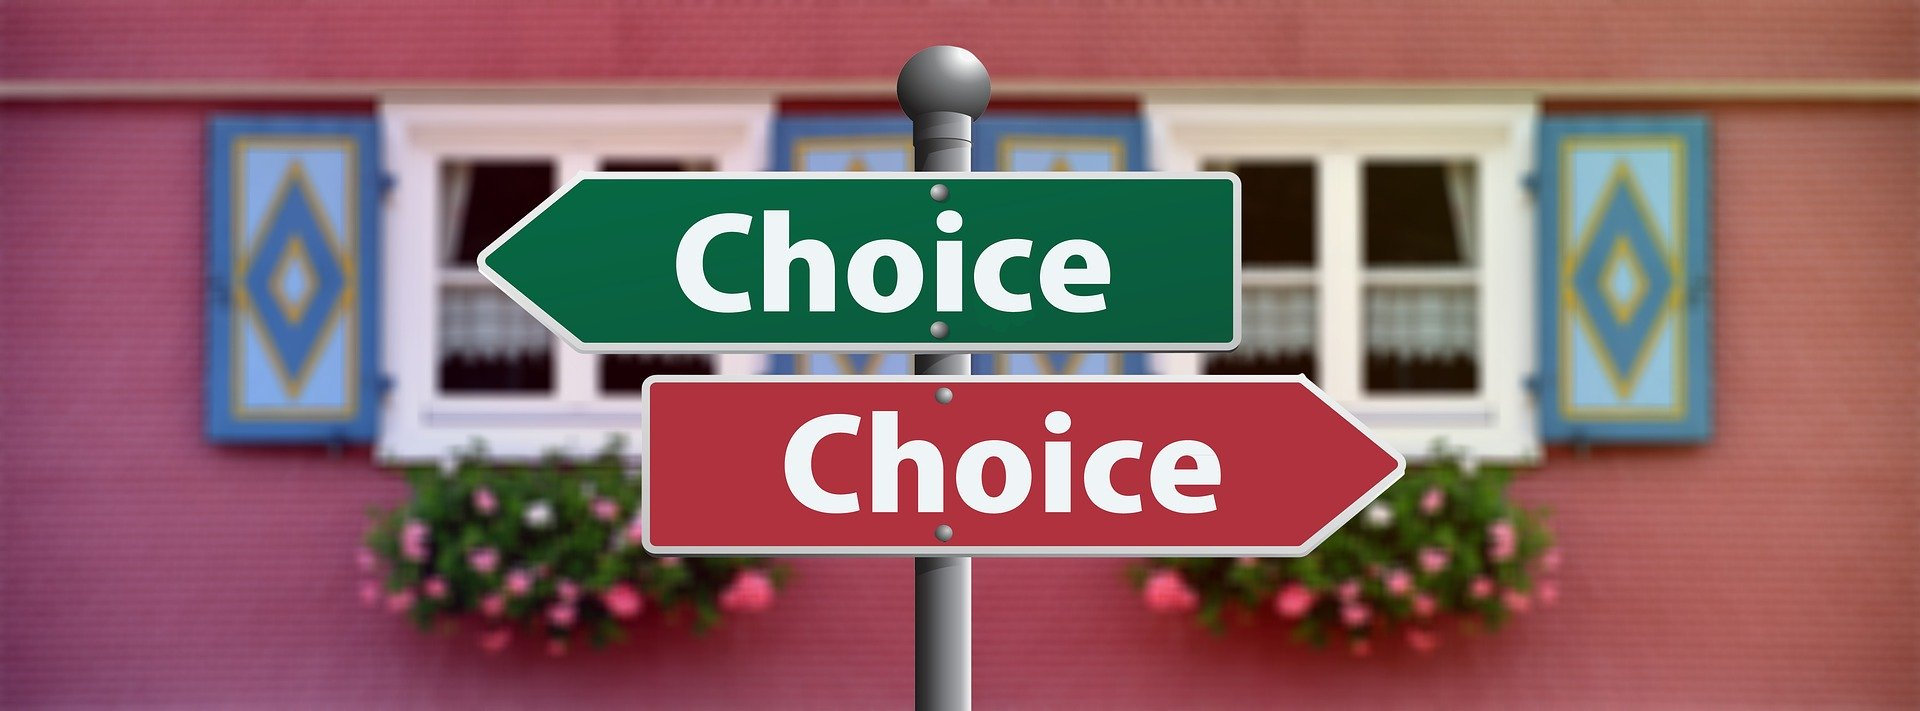 L2M7: Choices and Freedom -USA